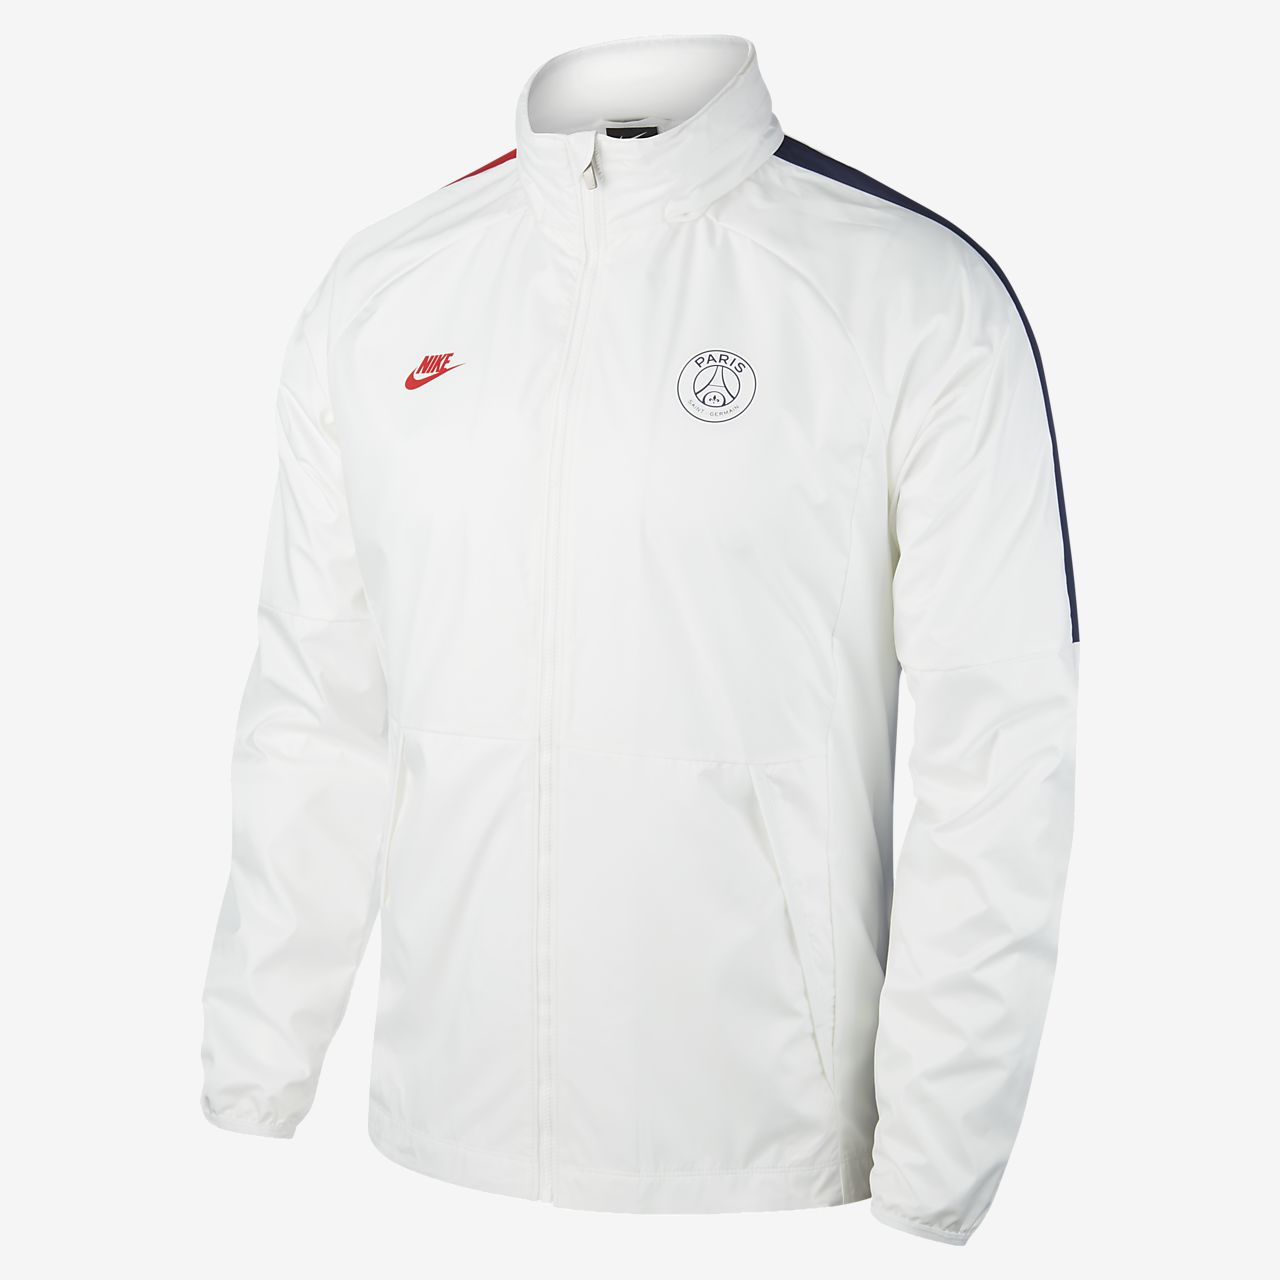 Paris Saint-Germain Men's Football Jacket